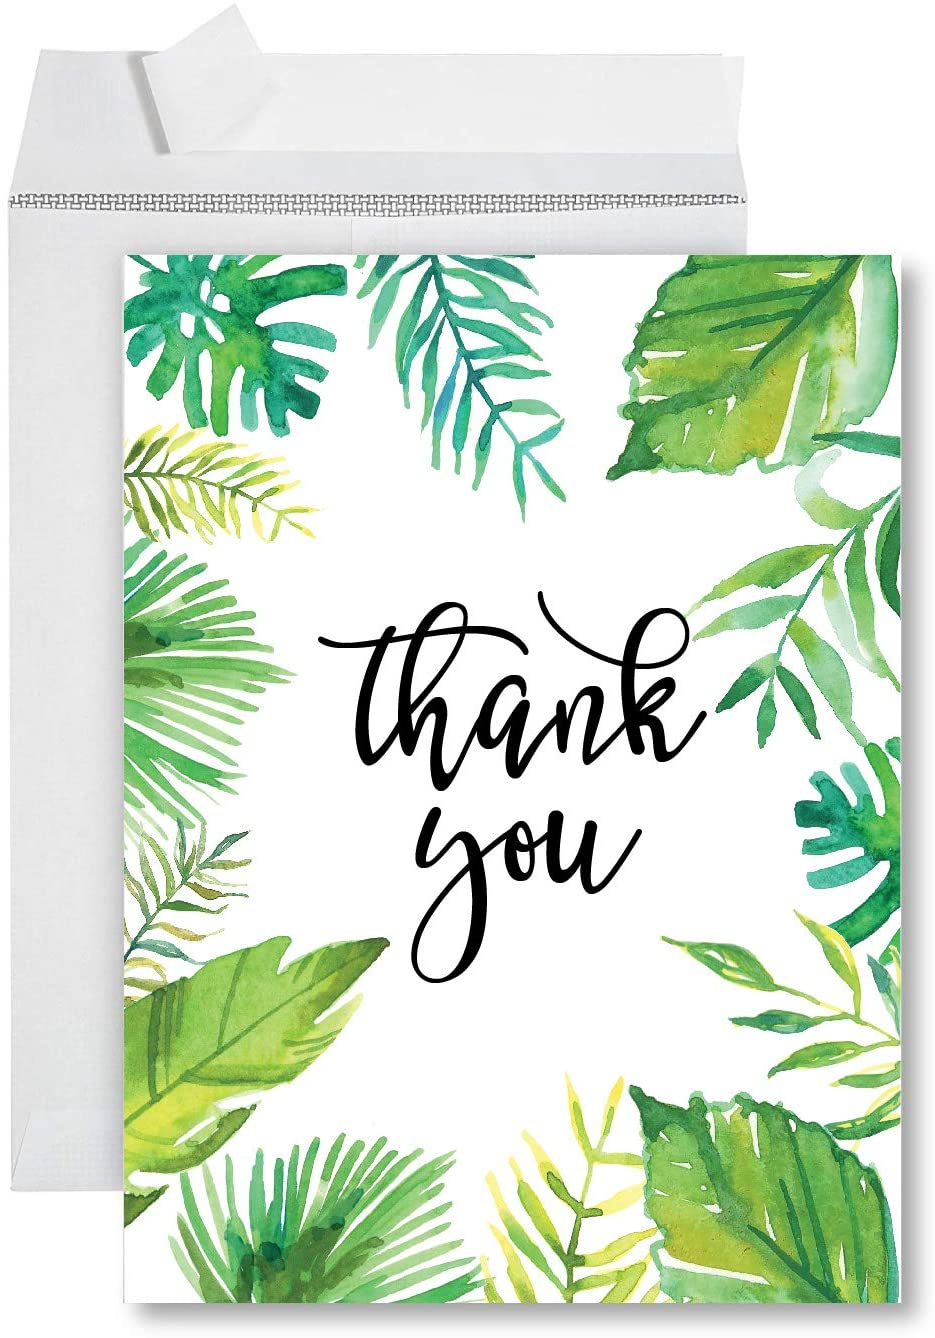 Andaz Press Funny Big Jumbo Thank You Card With Envelope 8.5 x 11 inch, Greeting Card, Thank You Tropical Watercolor, 1-Pack, Huge Large Group Greeting Card, Includes Envelope